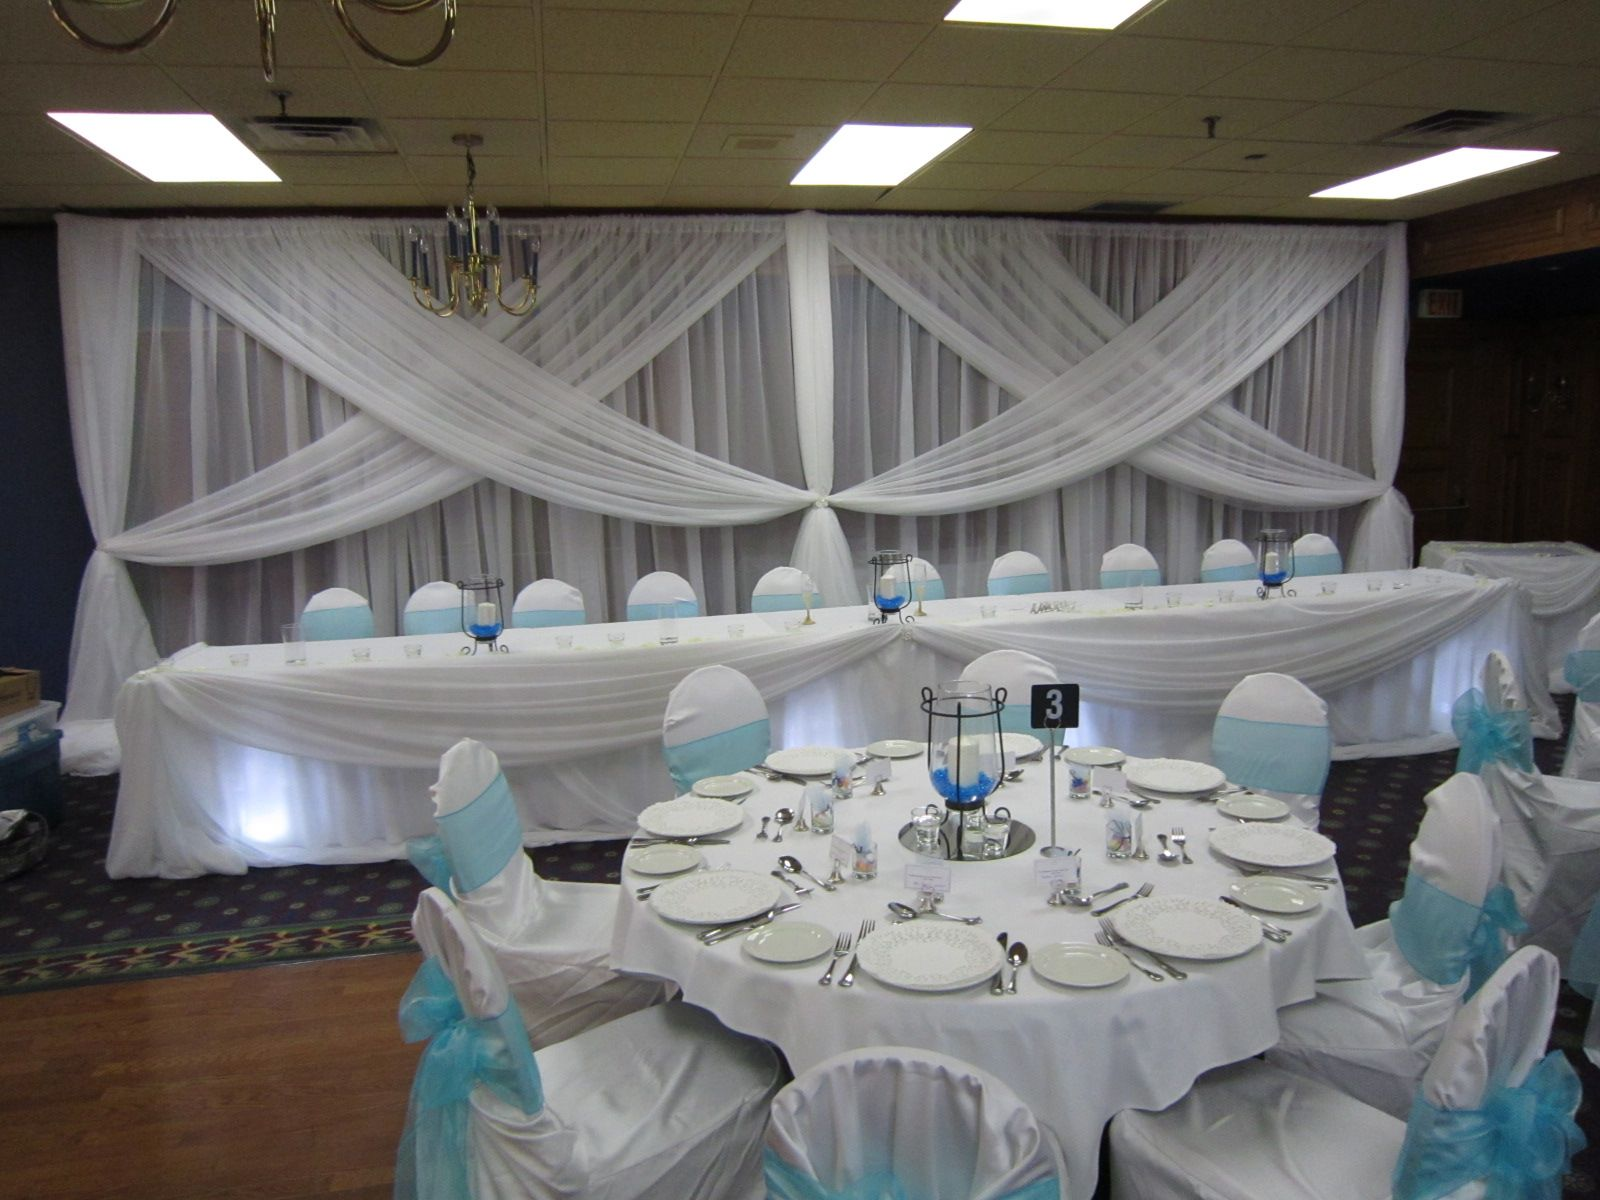 Wedding head table decorations white wedding with a touch of blue wedding head table decorations white wedding with a touch of blue junglespirit Image collections